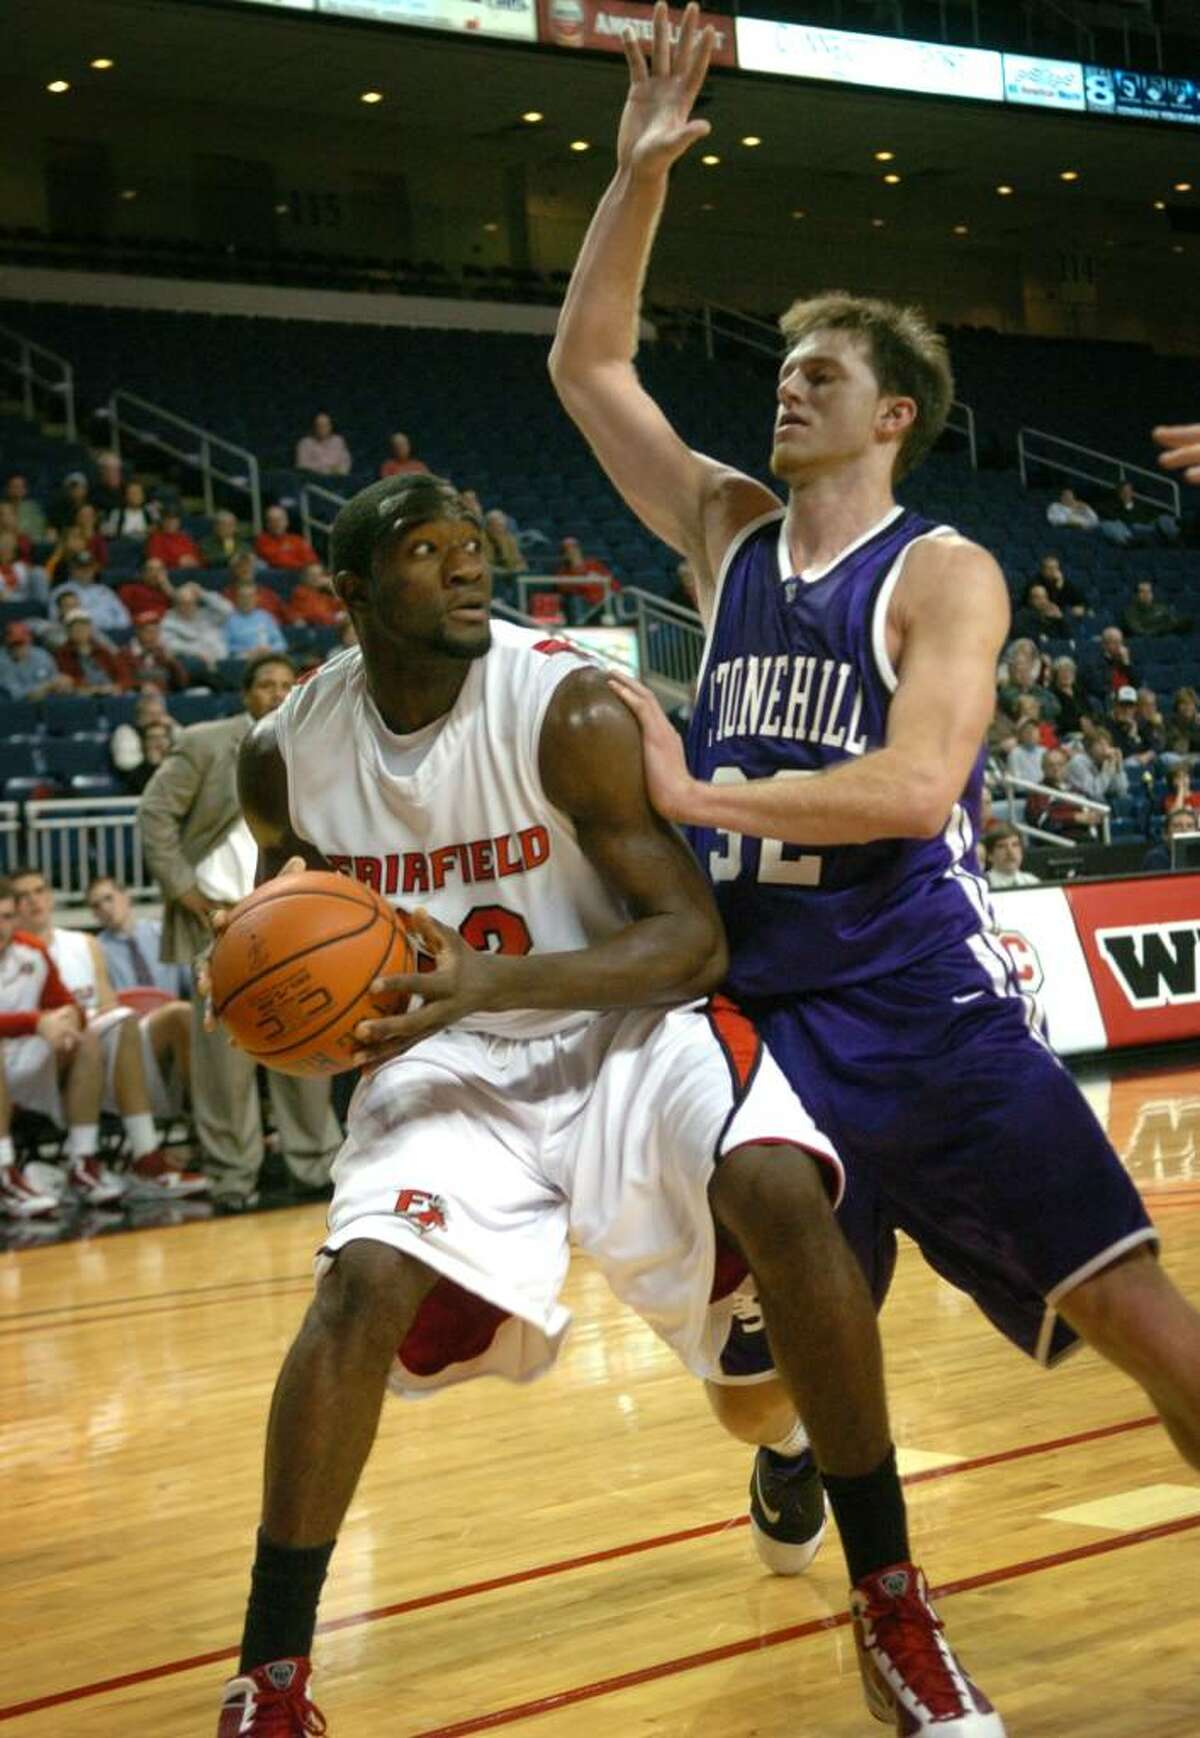 Fairfield's Anthony Johnson looks to score down low against Stonehill defender A.J. Rudowitz during a recent game at the Arena at Harbor Yard in Bridgeport.